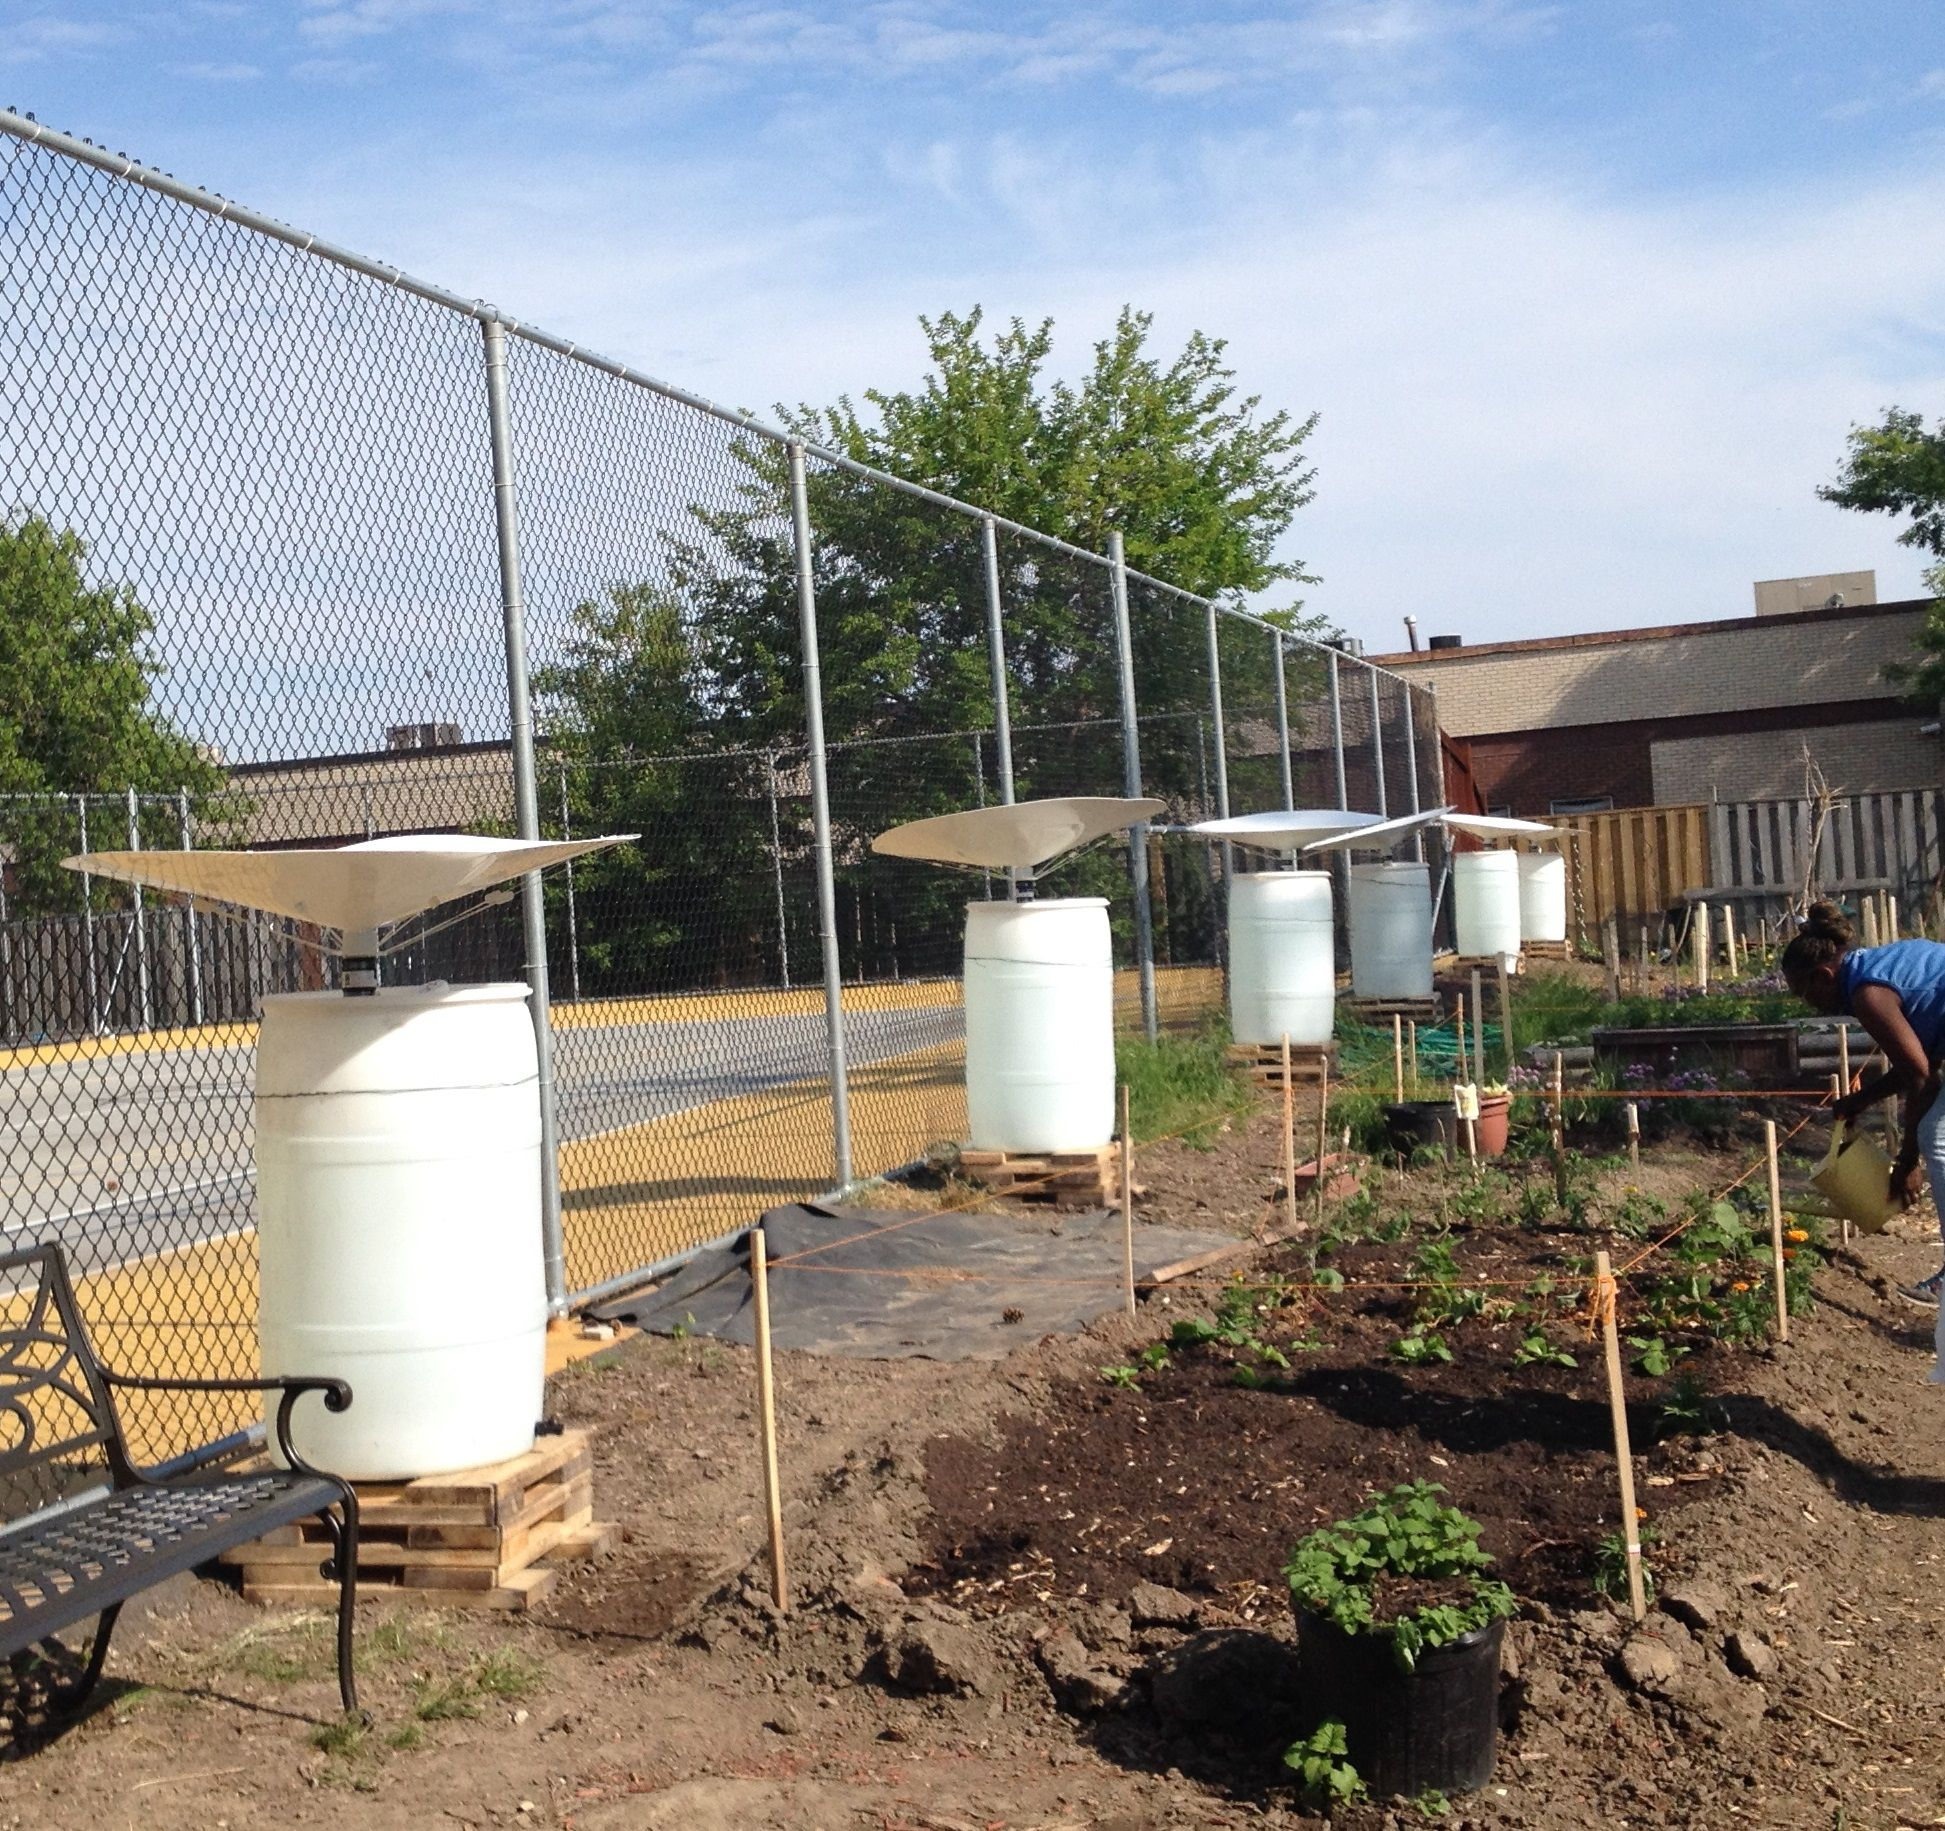 Community Garden in Toronto uses an array of RainSaucers